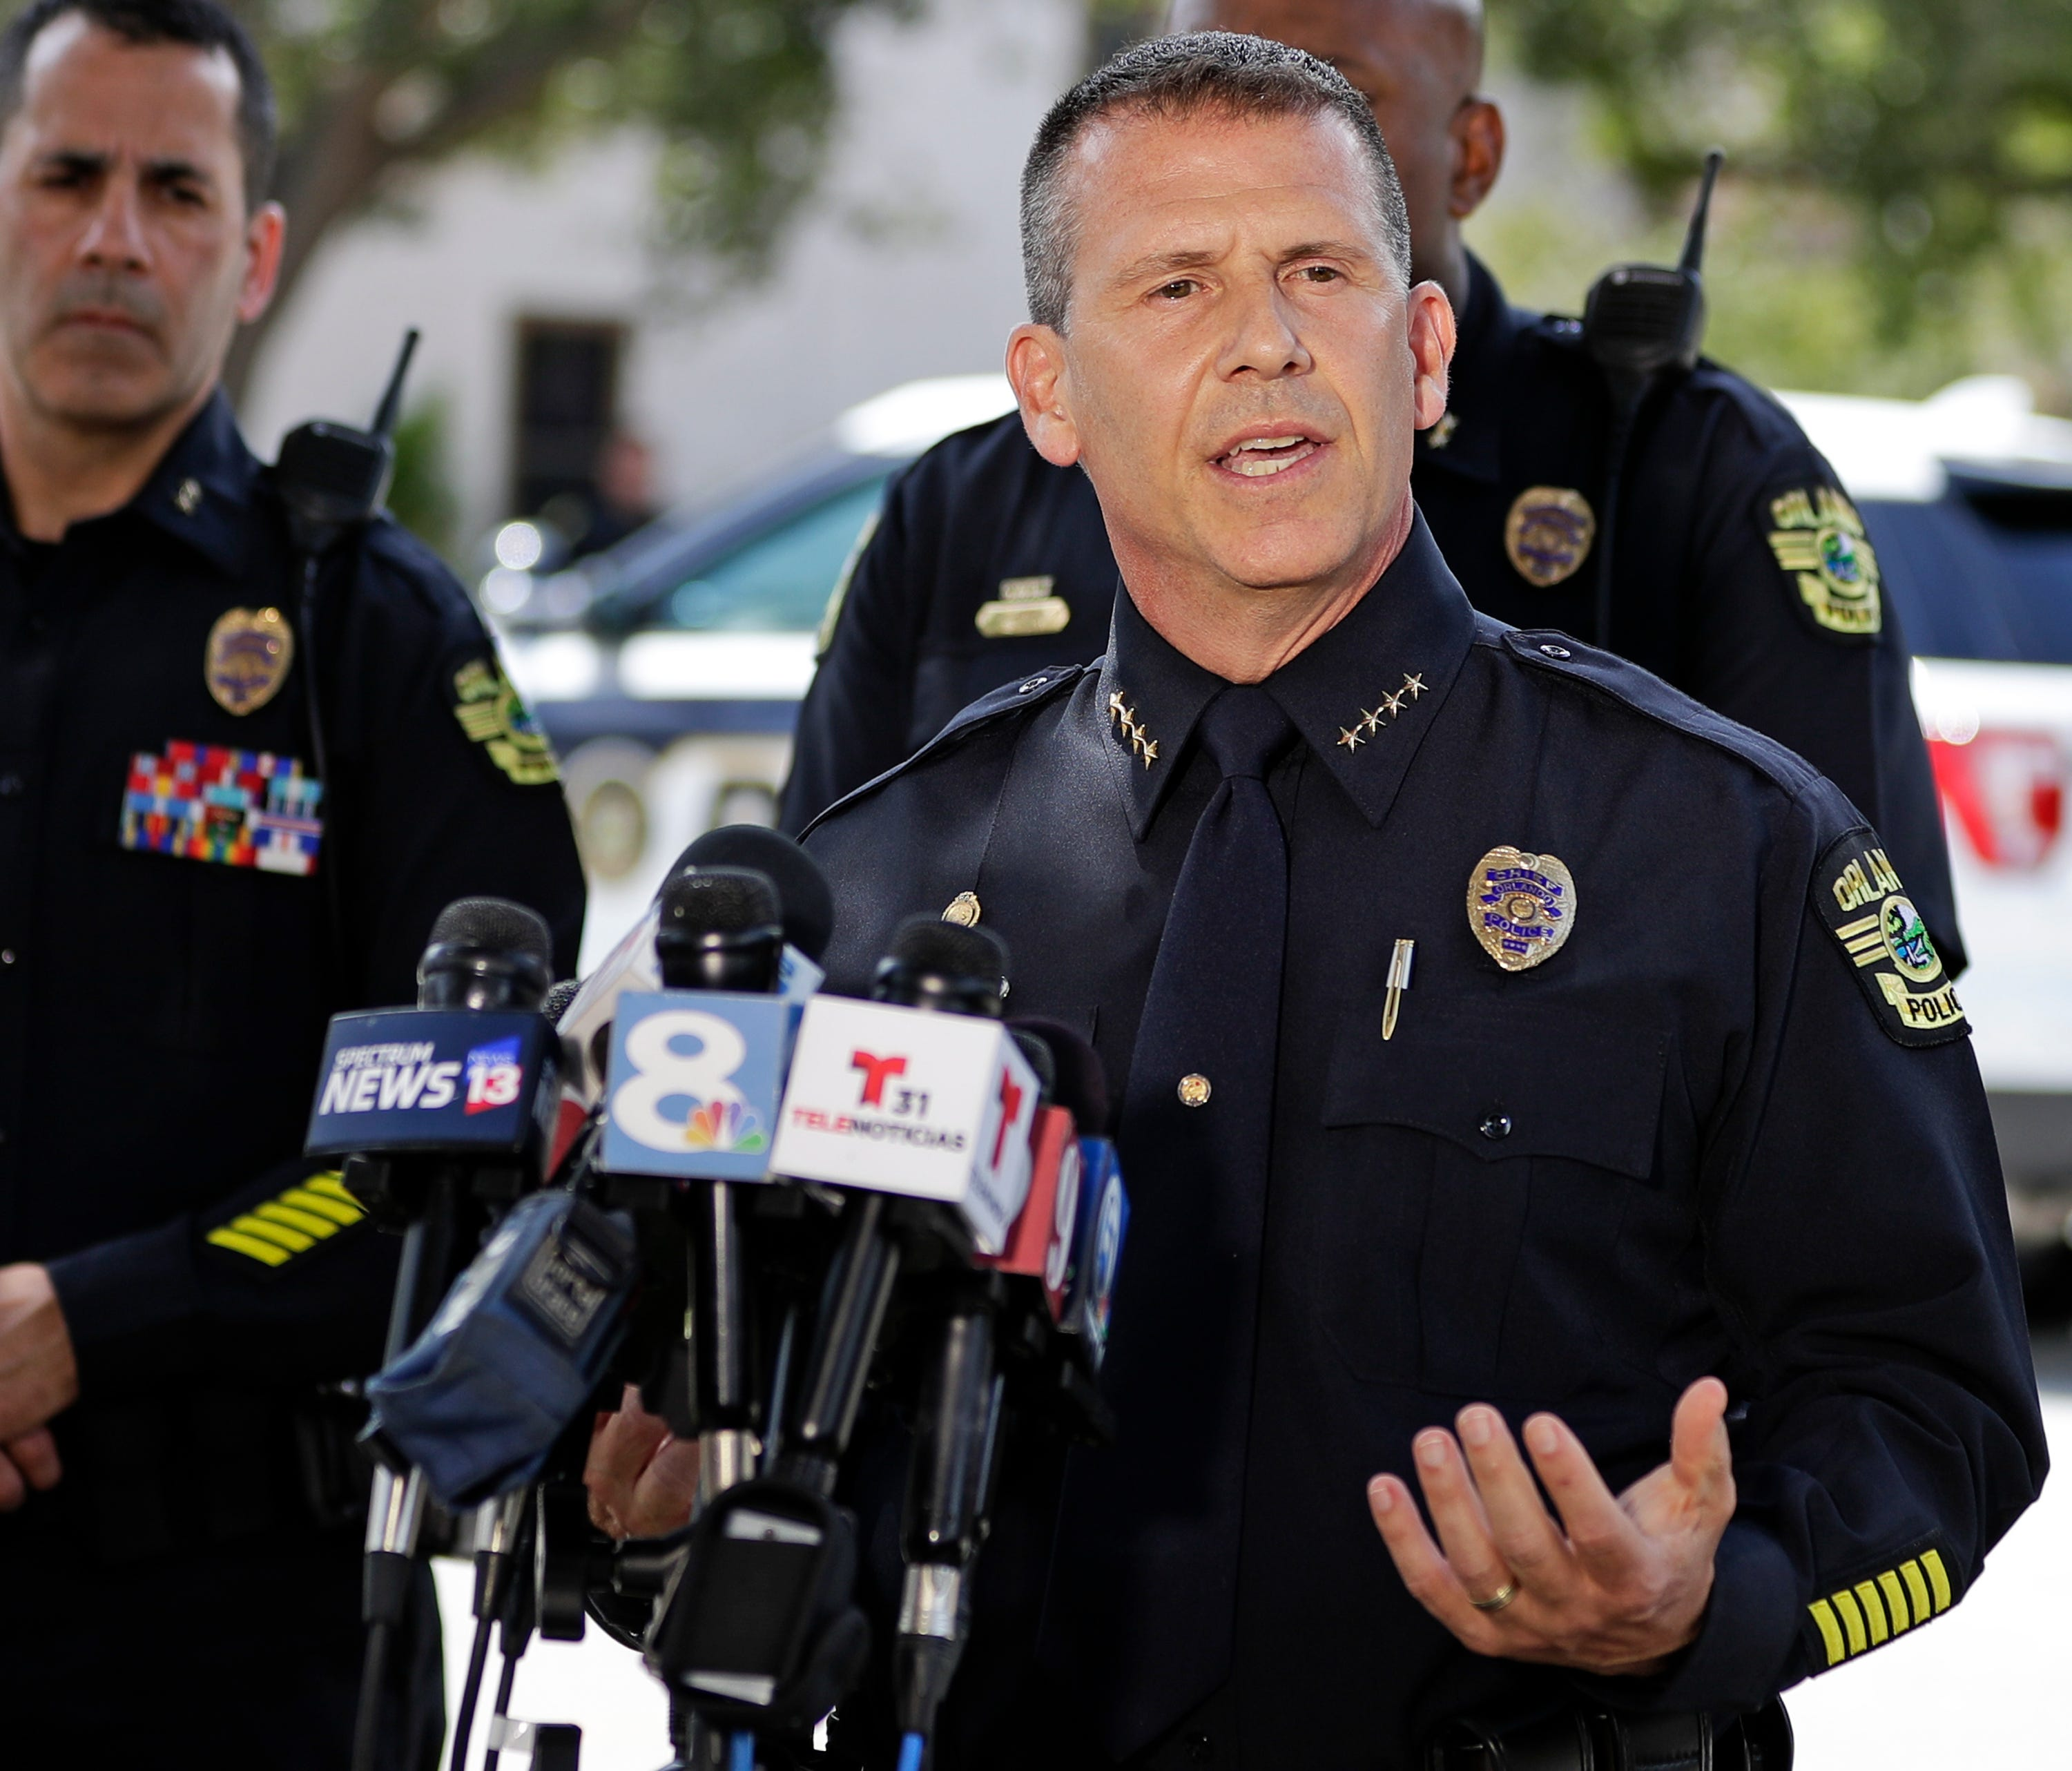 Orlando Police Chief John Mina answers questions at an afternoon news conference during a hostage standoff Monday, June 11, 2018, in Orlando, Fla. Police said a man suspected of battering his girlfriend shot a police officer late Sunday and barricade